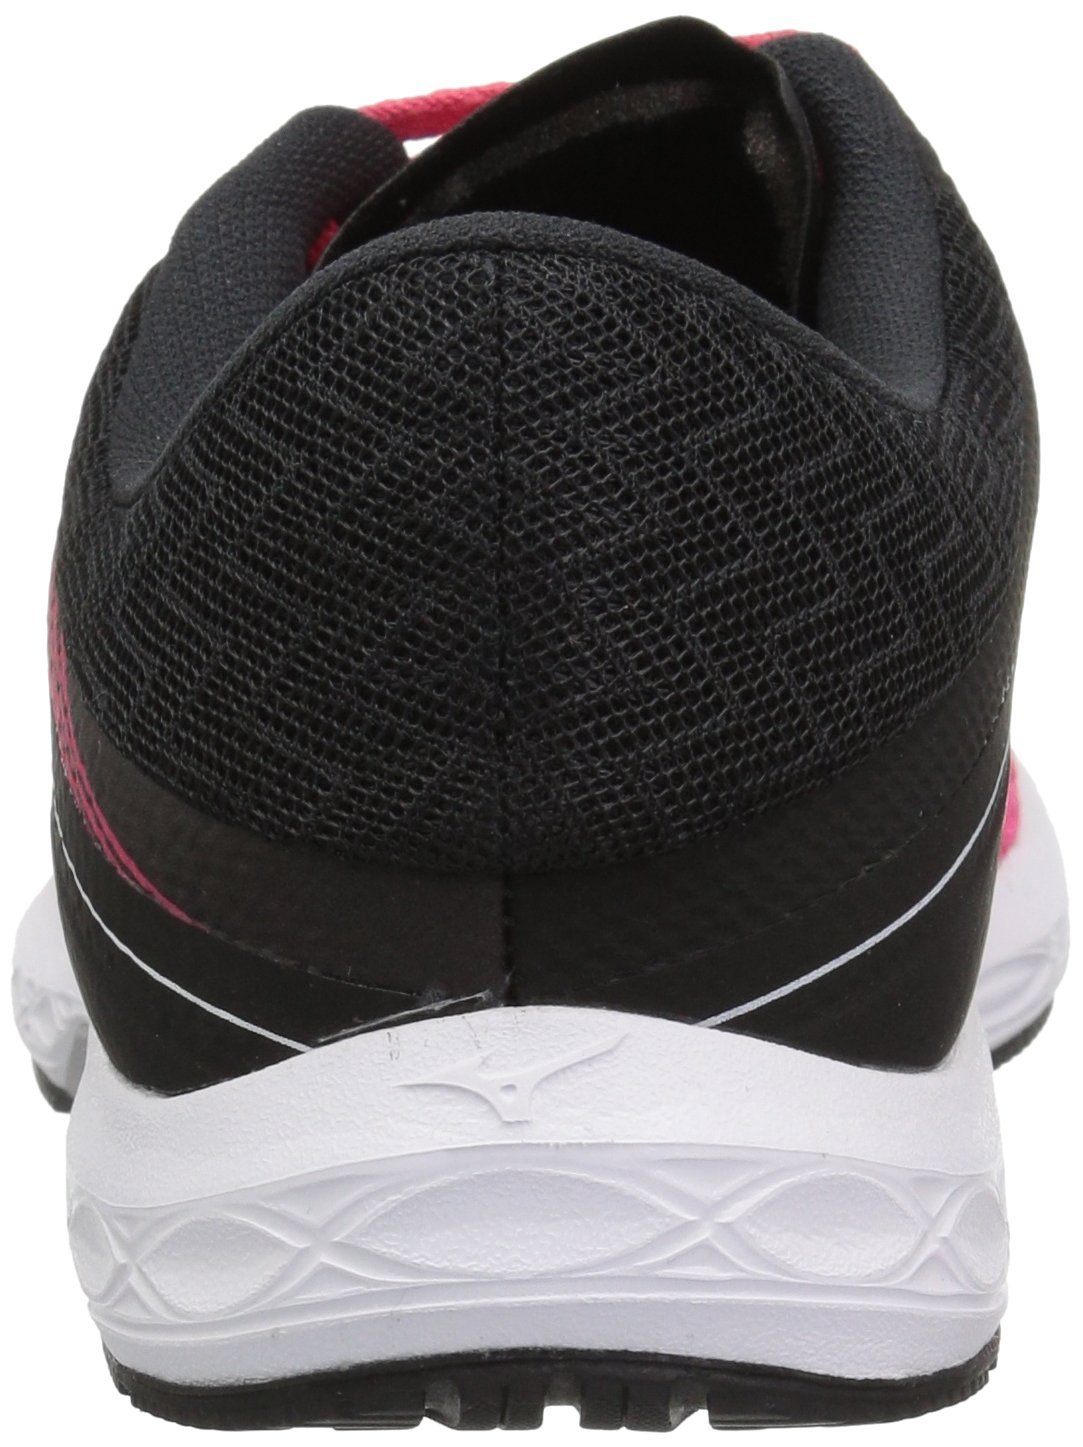 71eW1bwt0pL - Mizuno Women's Wave Sonic Running Shoe